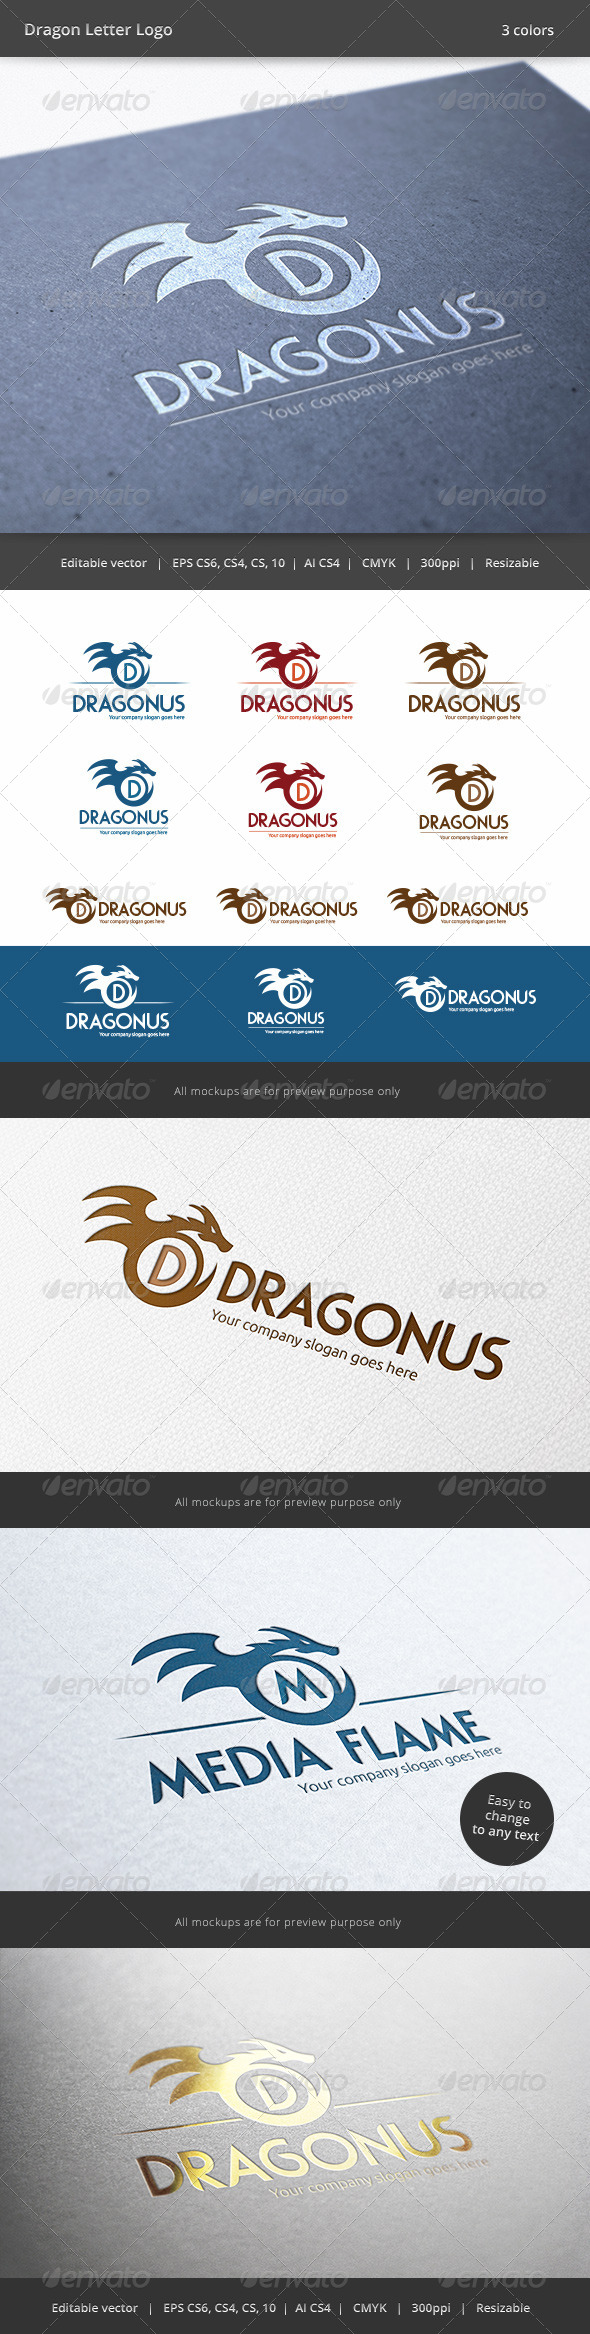 GraphicRiver Dragon Letter Logo 6222440